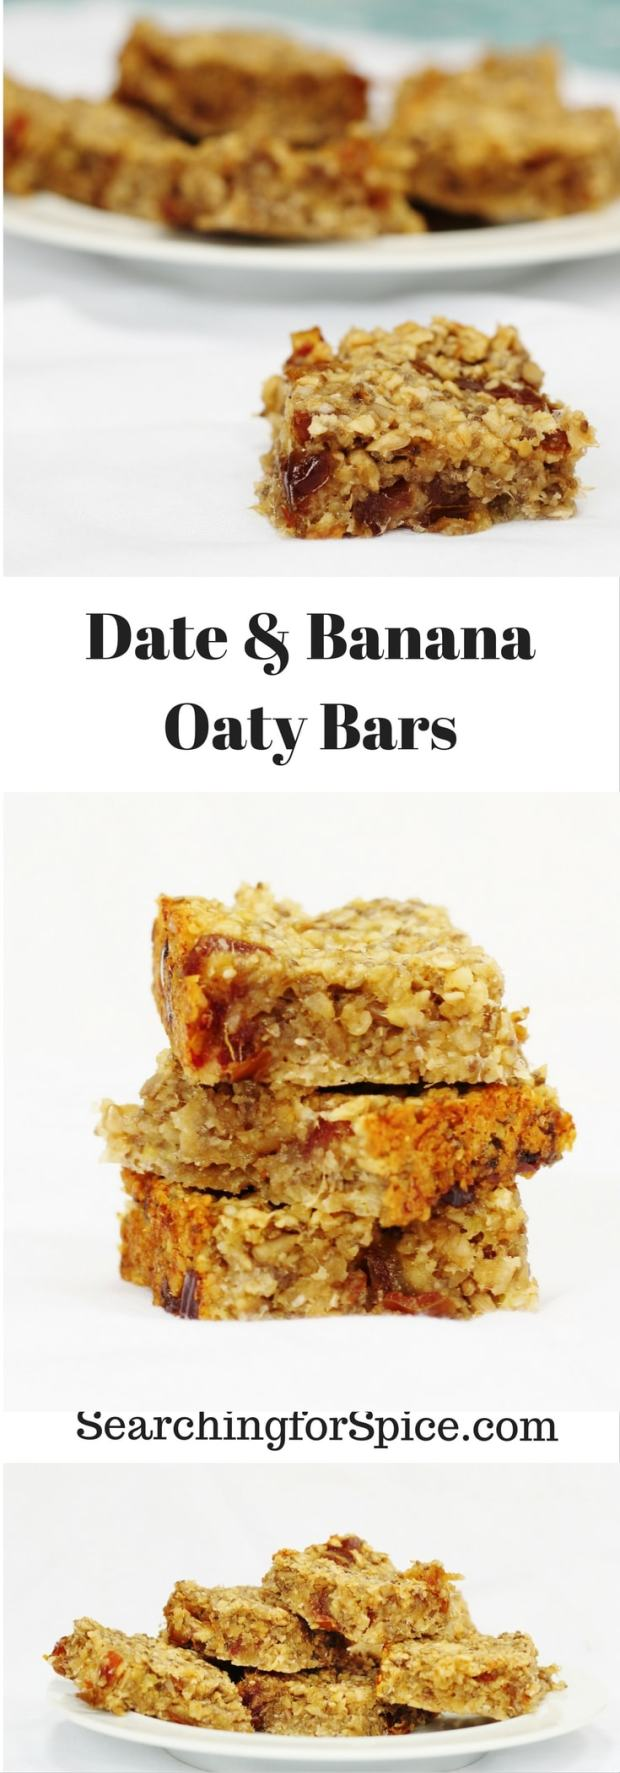 Date and Banana Oaty Bars